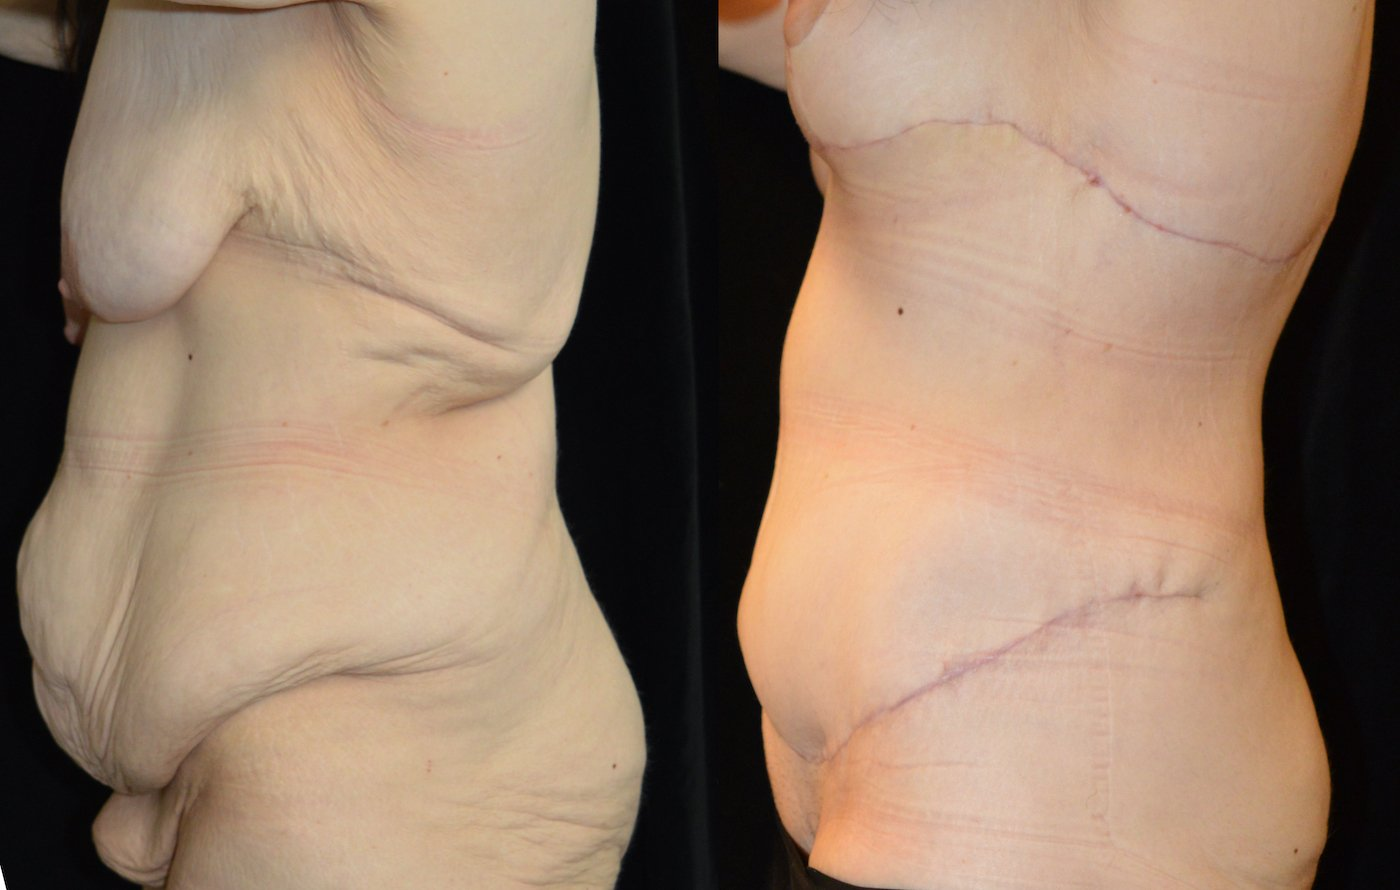 34-year-old 3 months after extended abdominoplasty and 1 month after breast lift, breast auto-augmentation, left side view